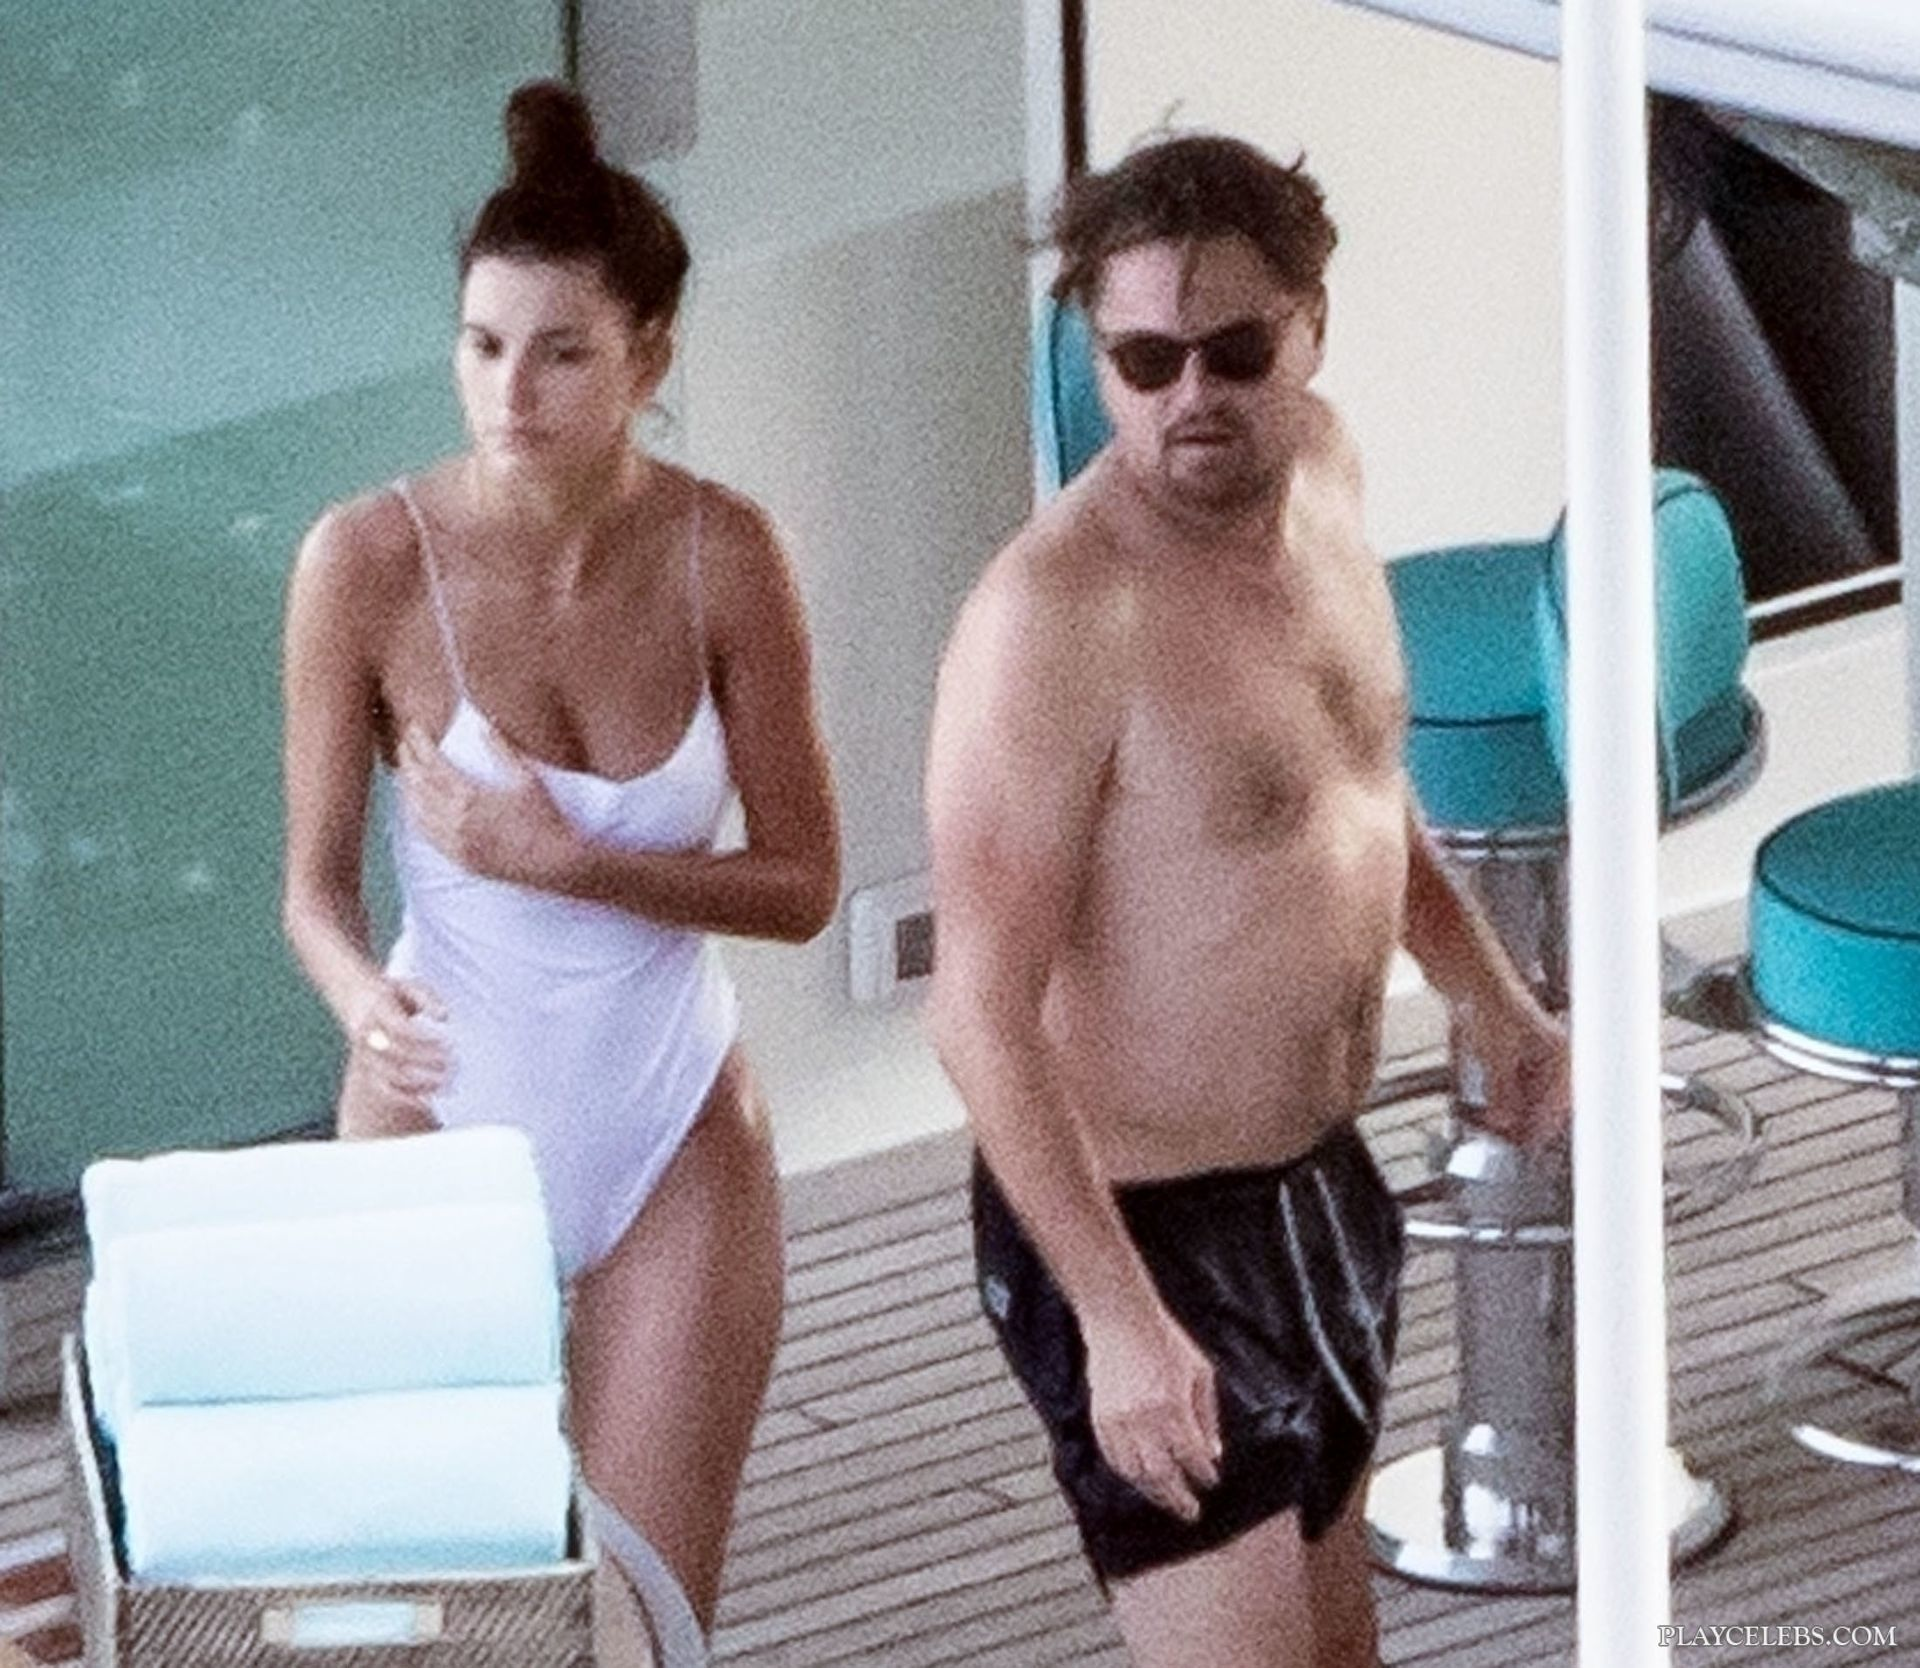 Camila Morrone Caught By Paparazzi In Bikini With Leonardo DiCaprio